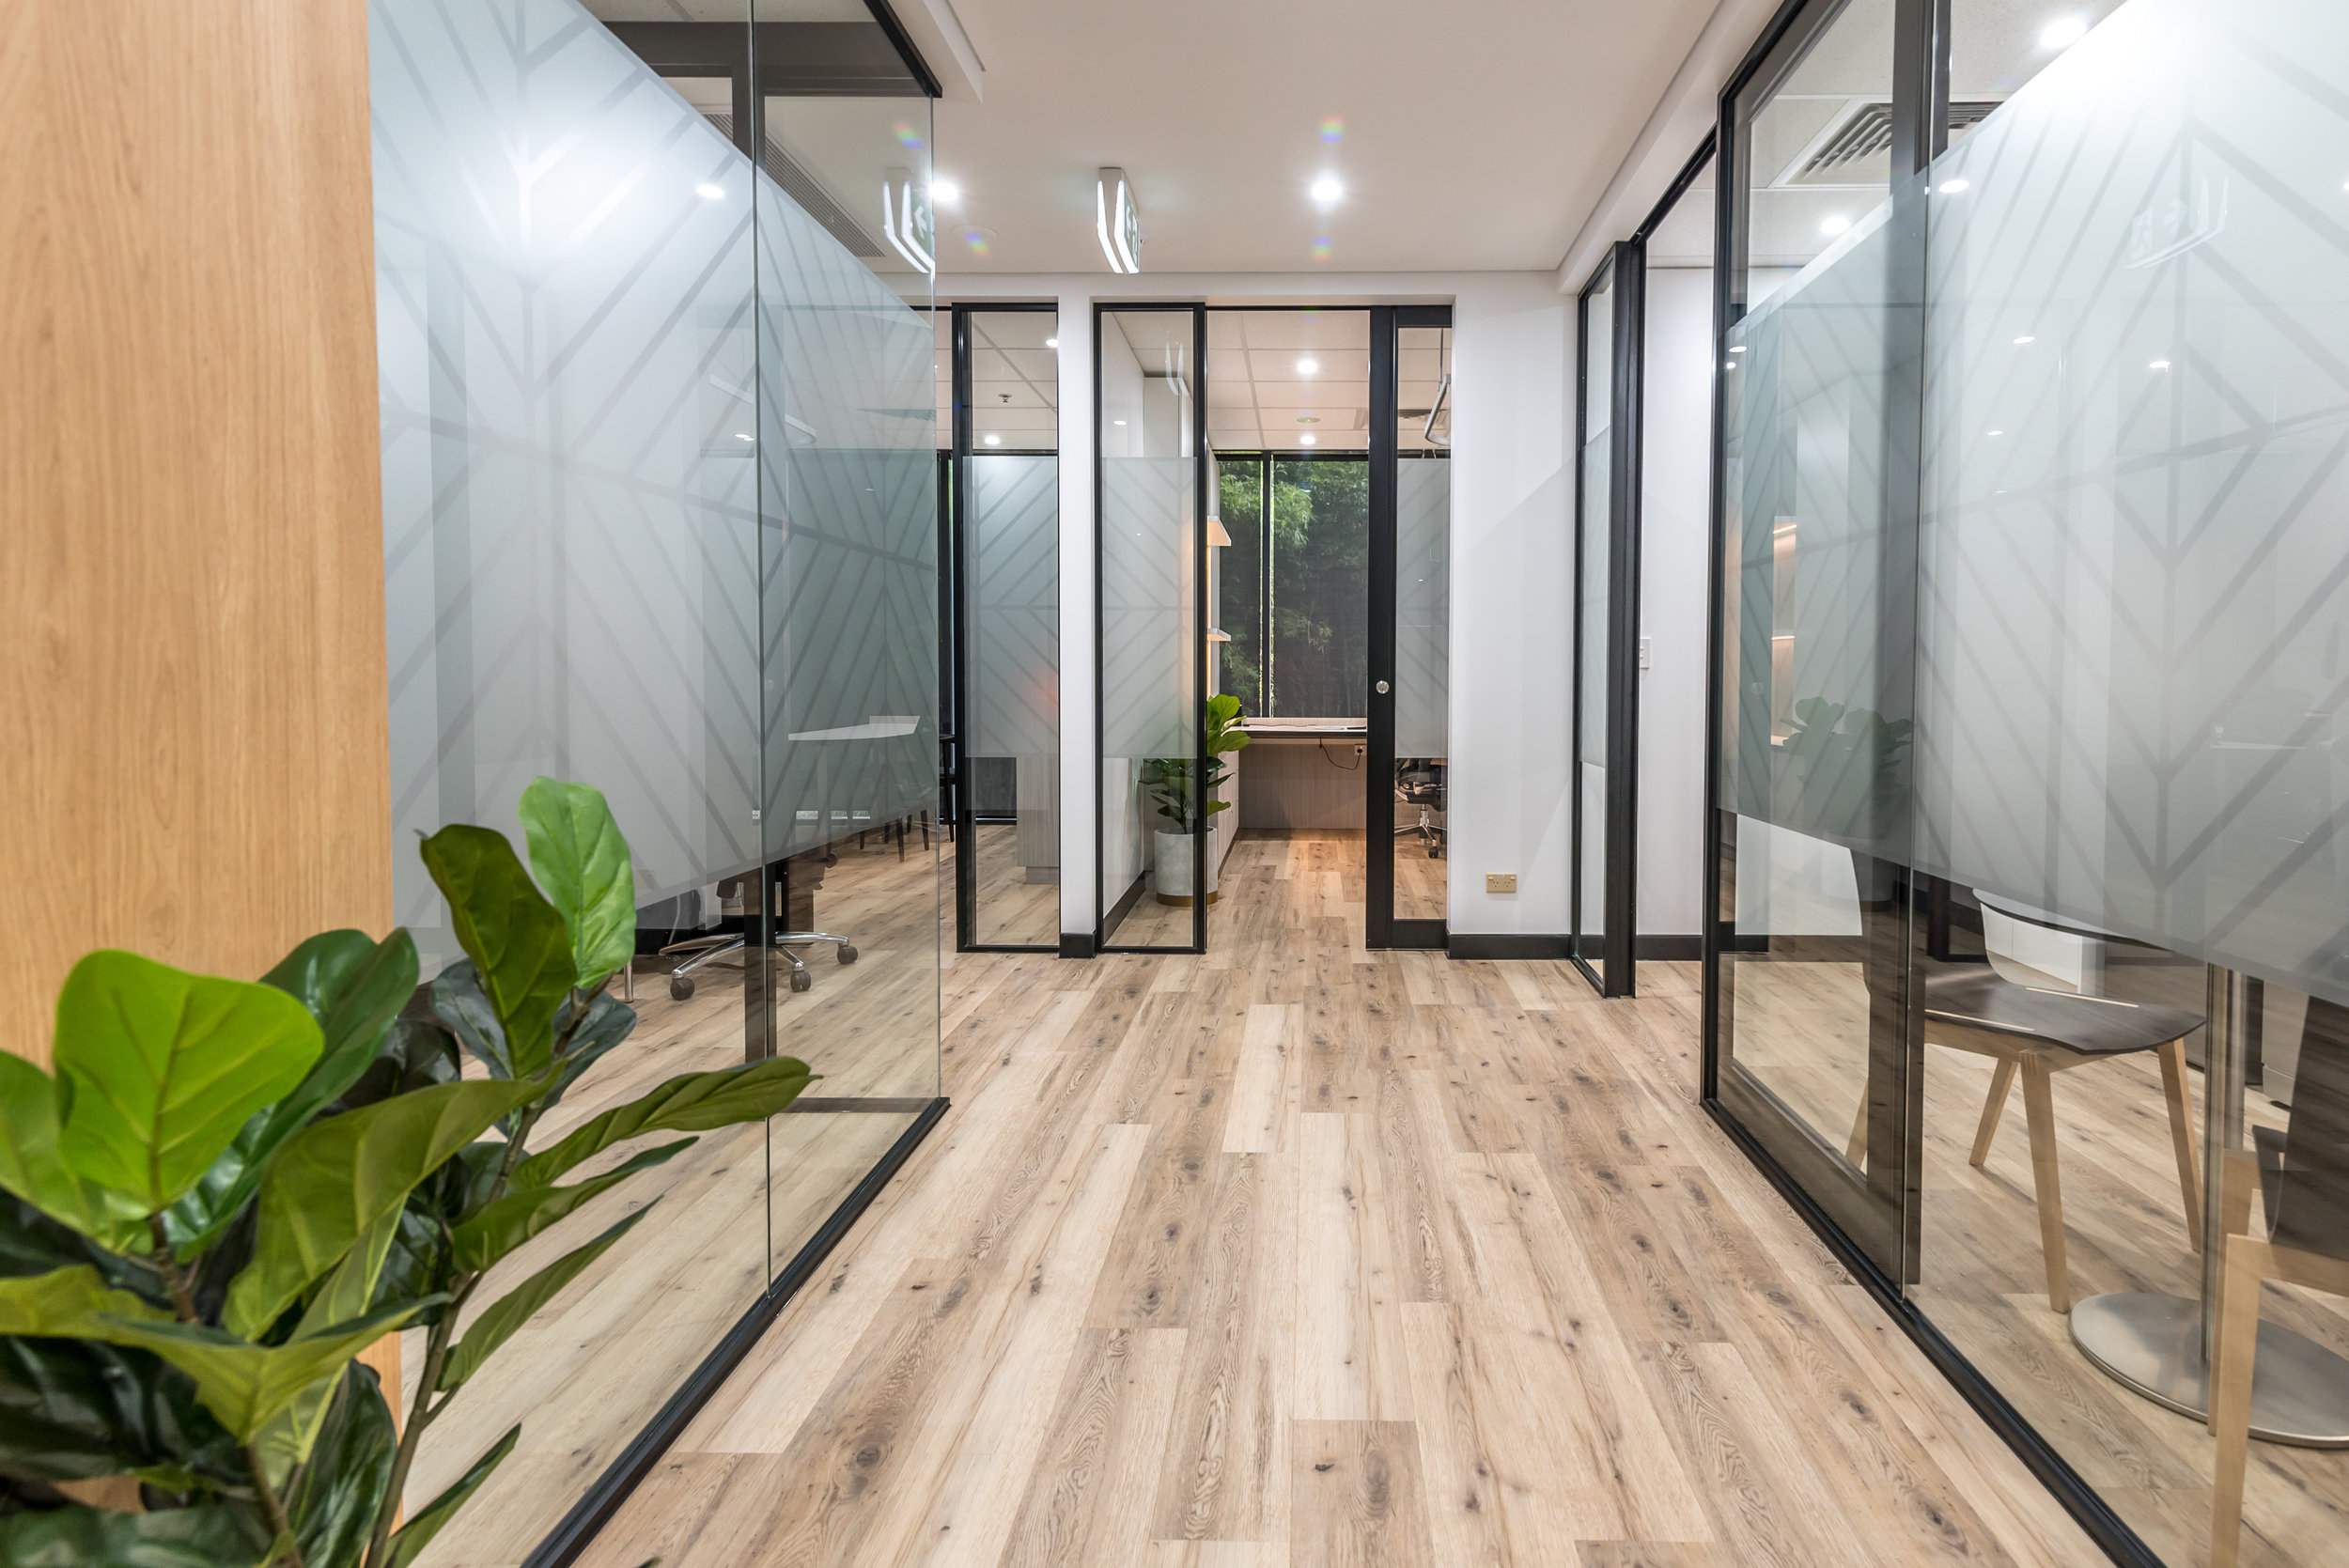 Commodore Dental and Medical Fitout - Sydney-12.jpg